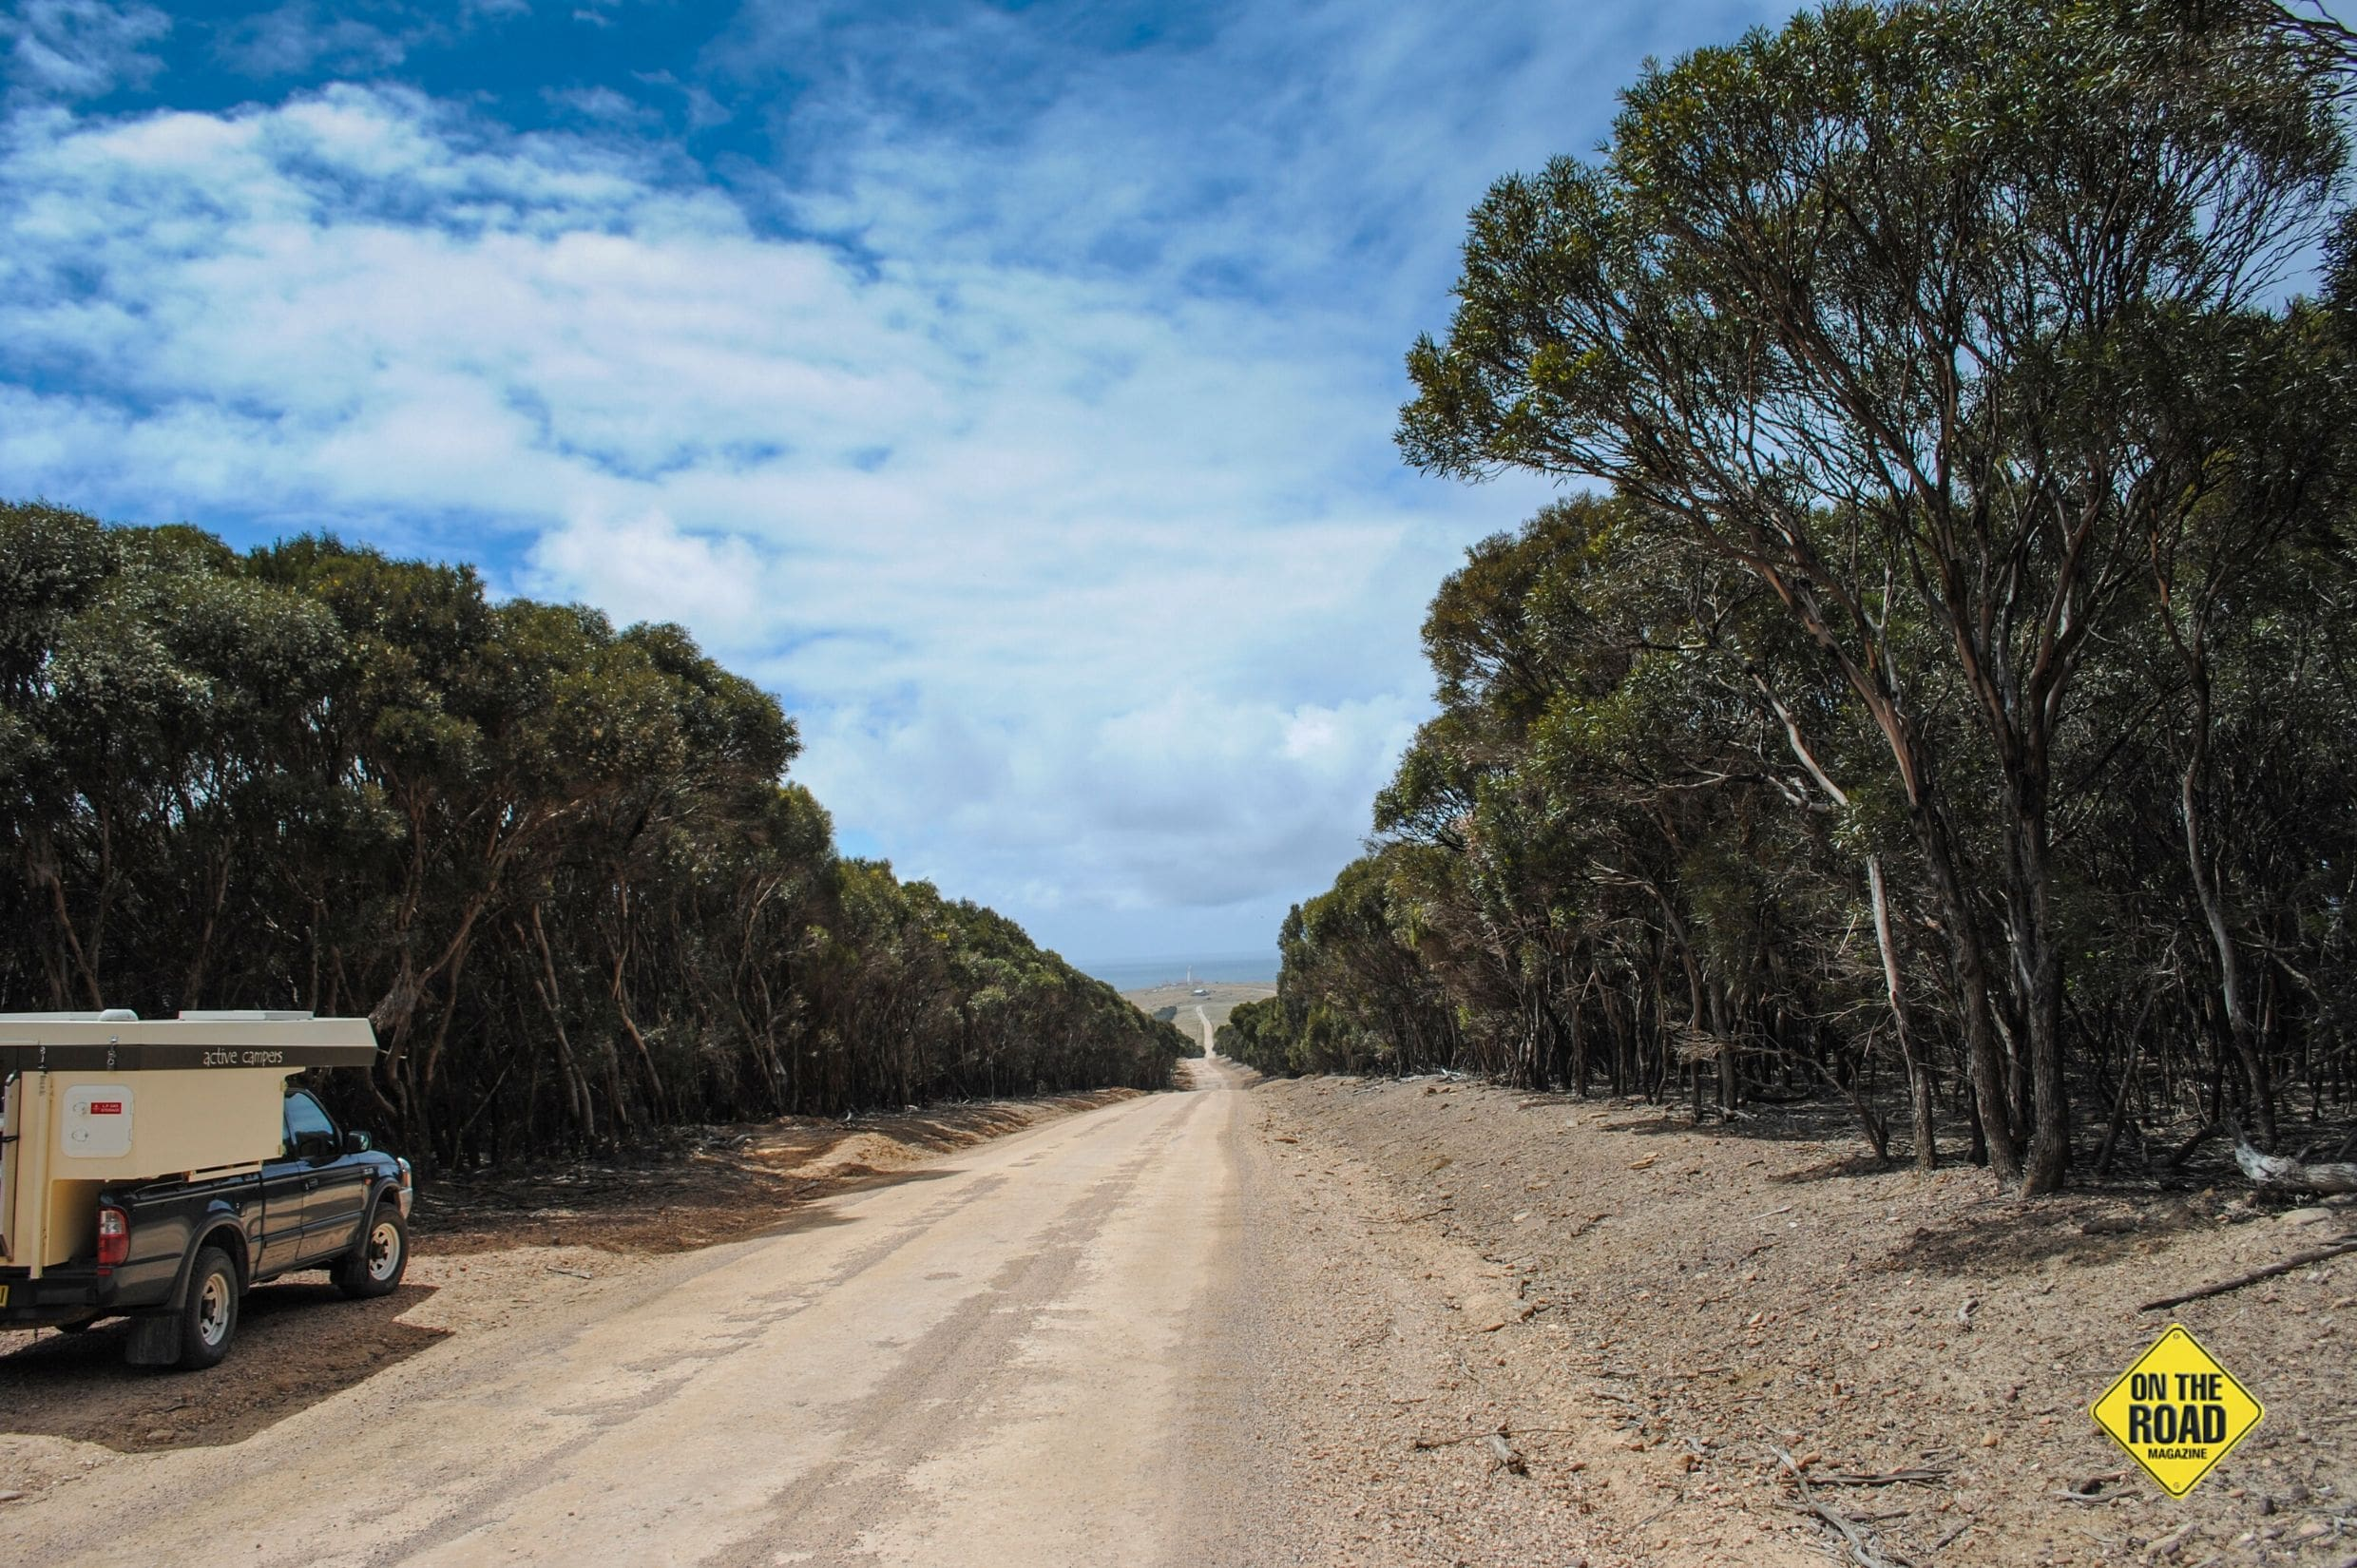 The road out to Cape Willoughby Lighthouse. The lighthouse can be seen in the distance